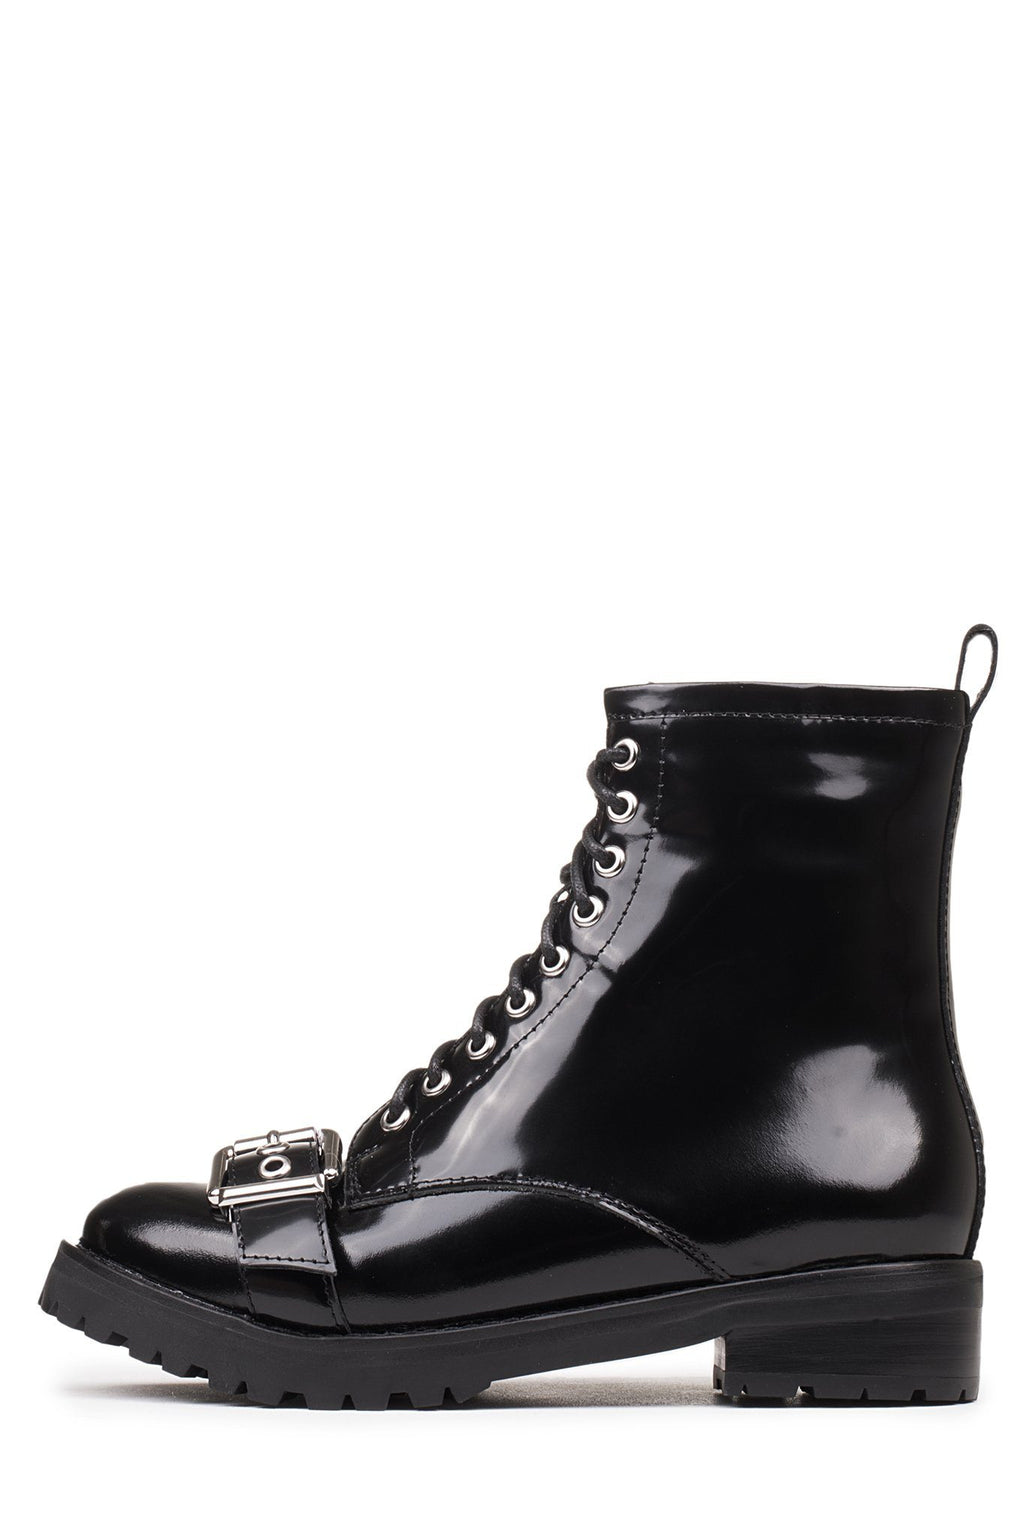 SLAM-BKL - Jeffrey Campbell